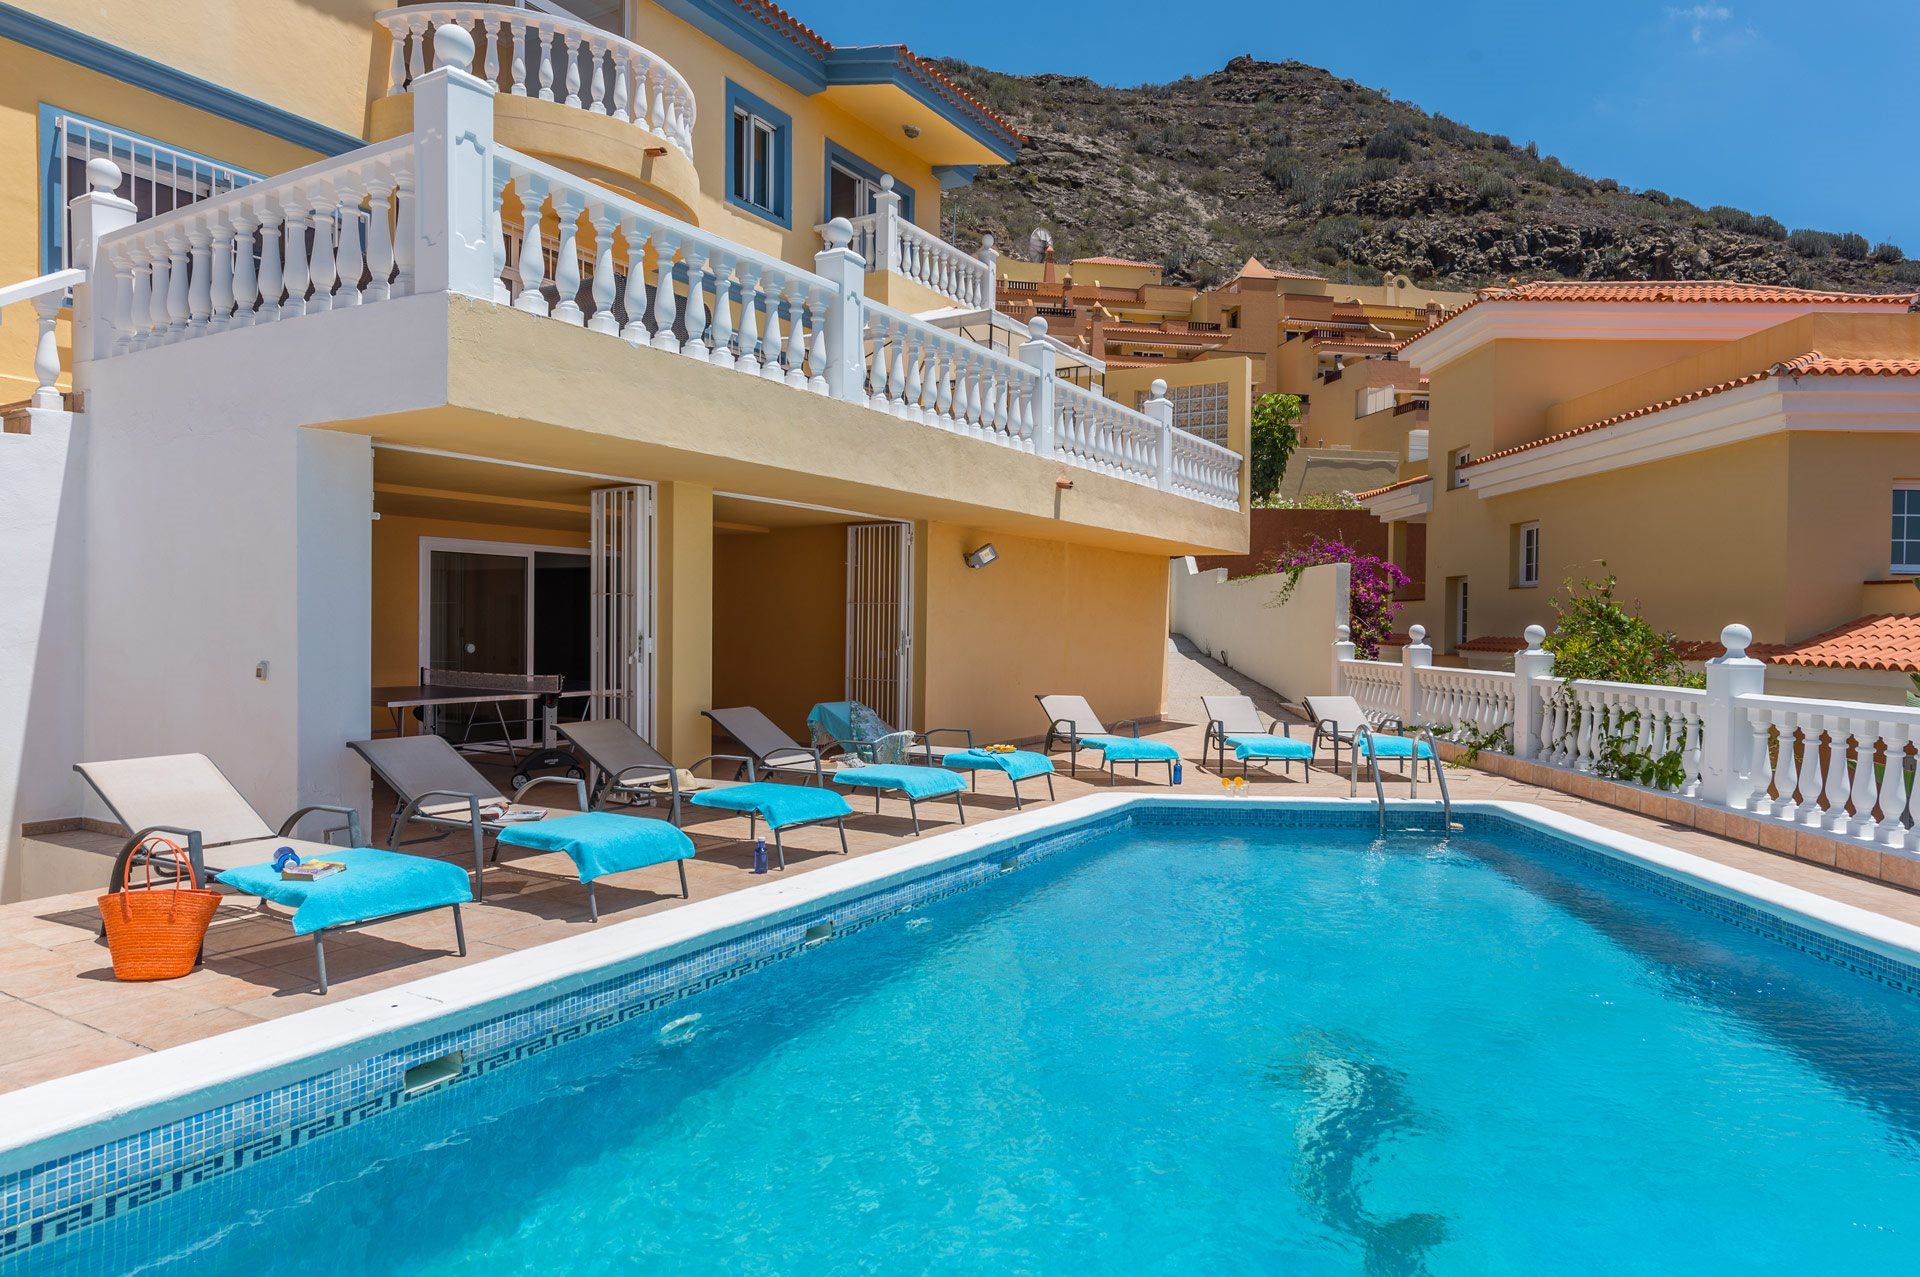 Tenerife | Unique Luxury Villa For Sale | €950.000 with guaranteed rental income of 52.000€ per year(optional)